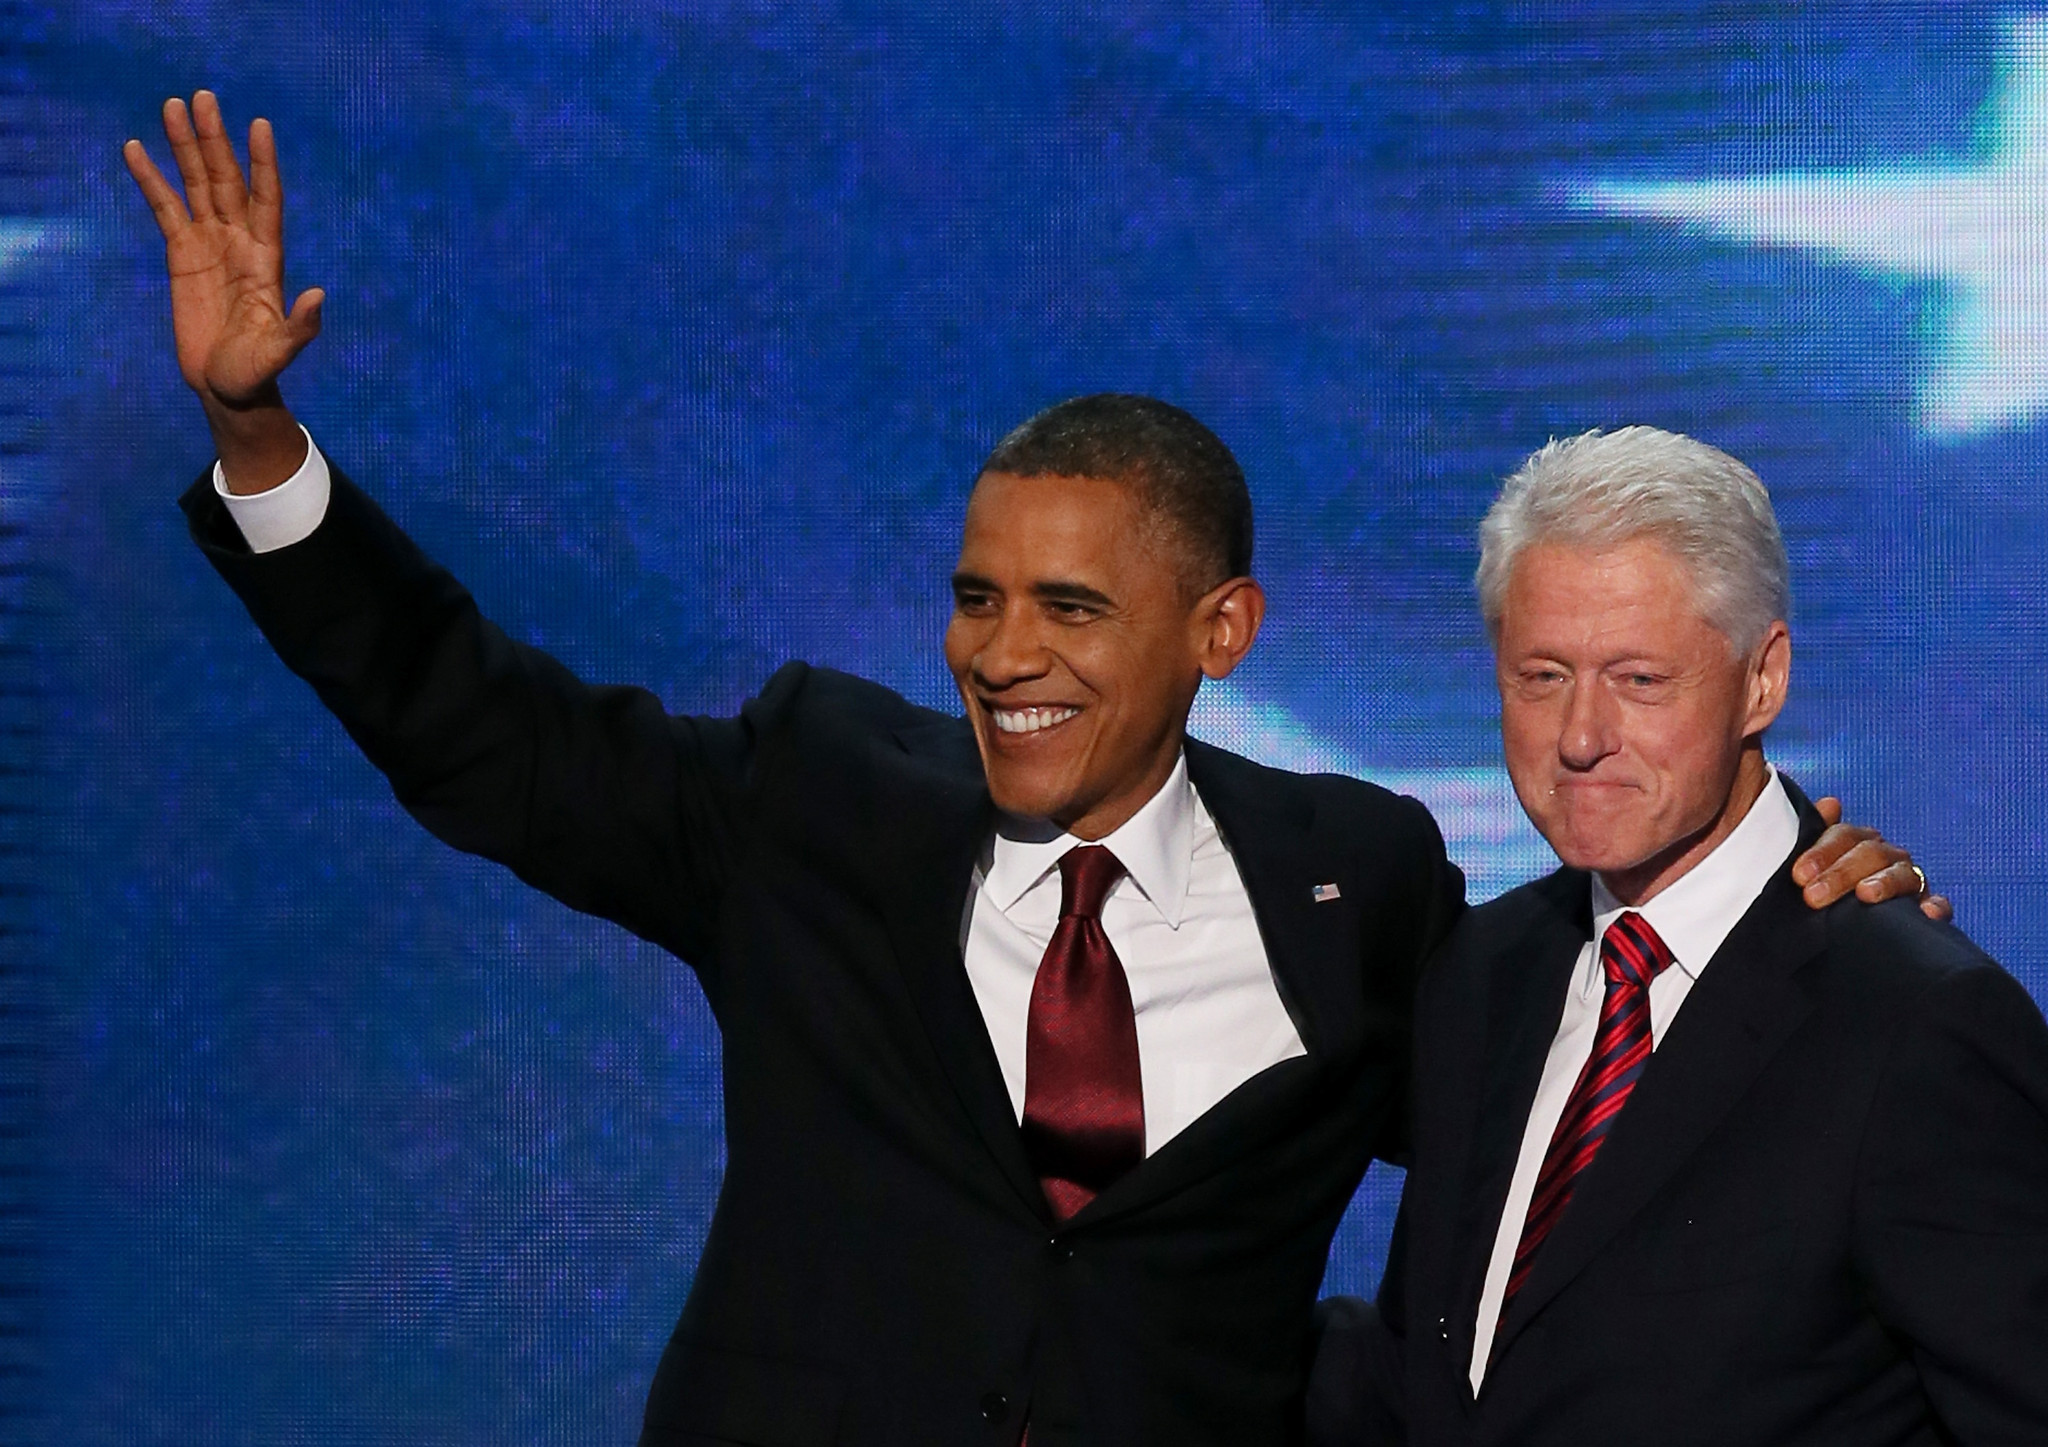 President Obama and former President Clinton on stage together after Clinton's speech at the Democratic National Convention.